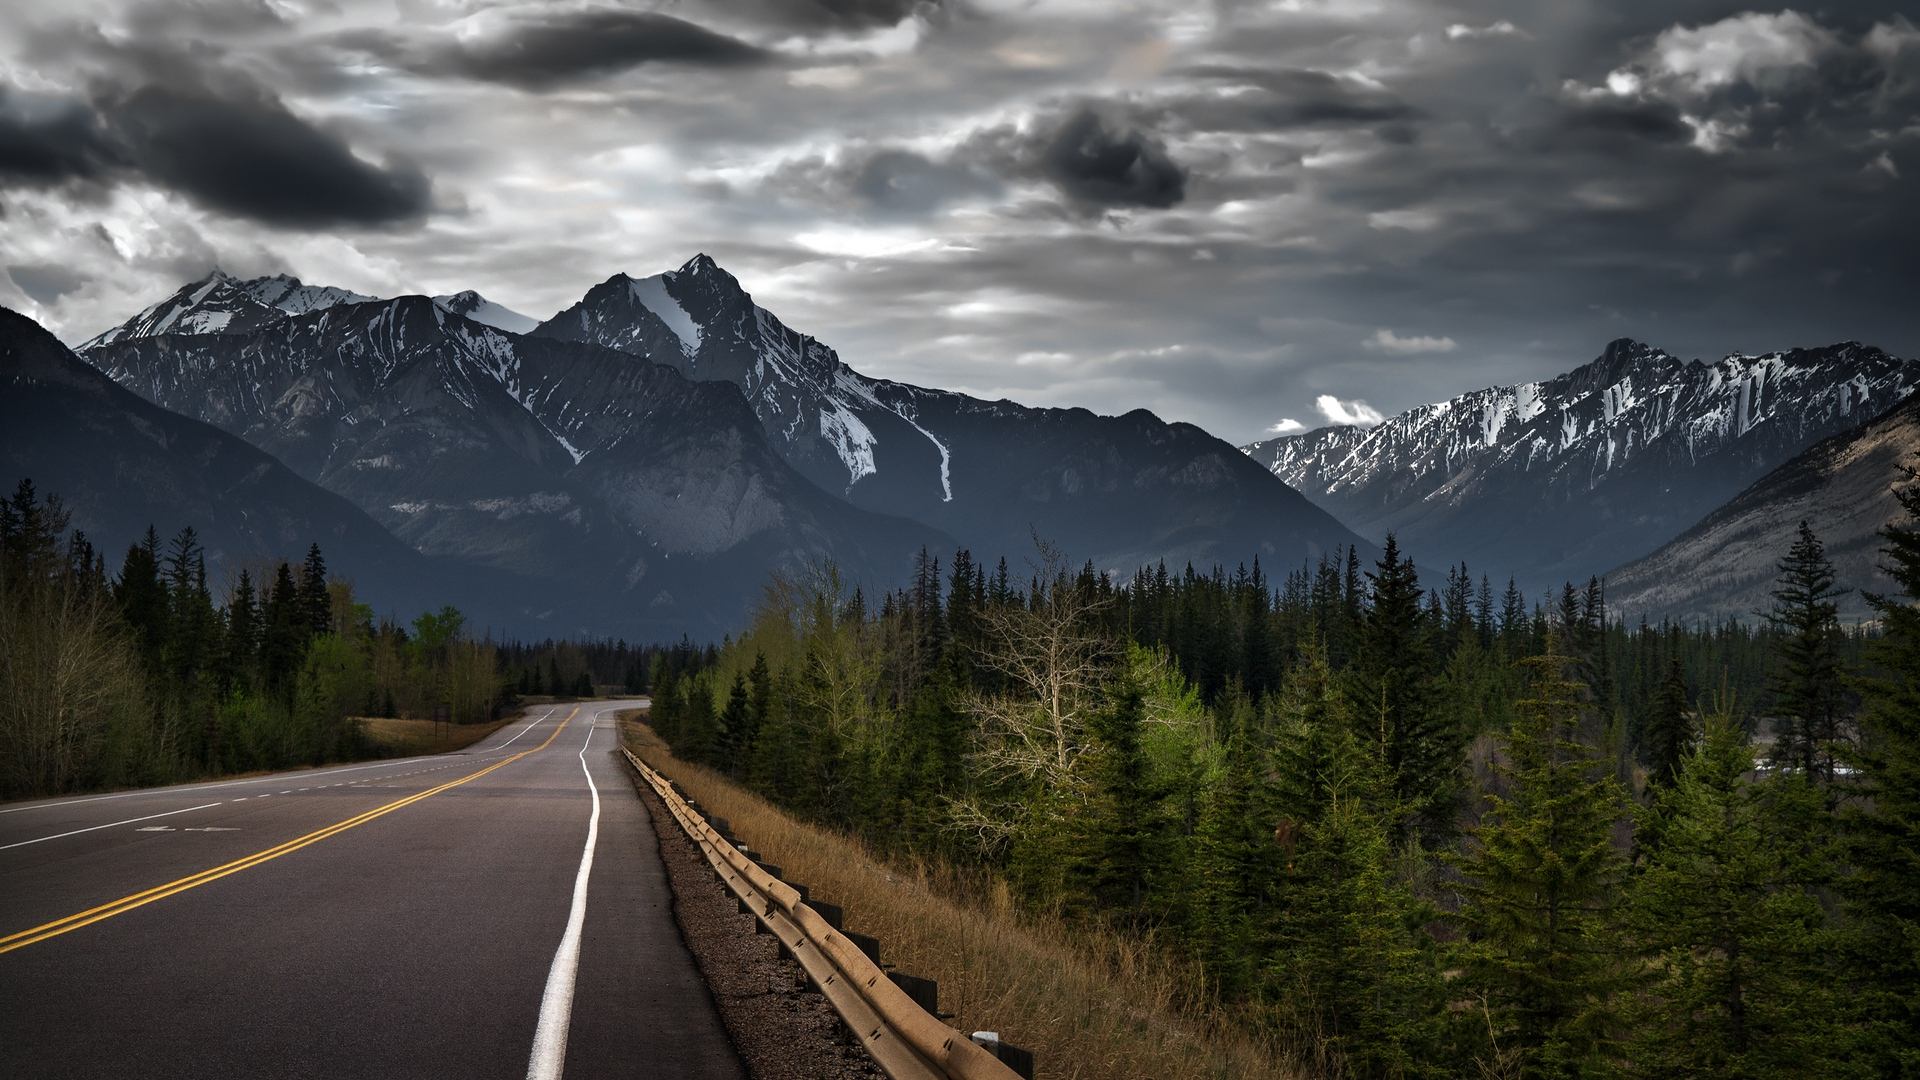 download wallpaper 1920x1080 canada, mountain, road, markings full